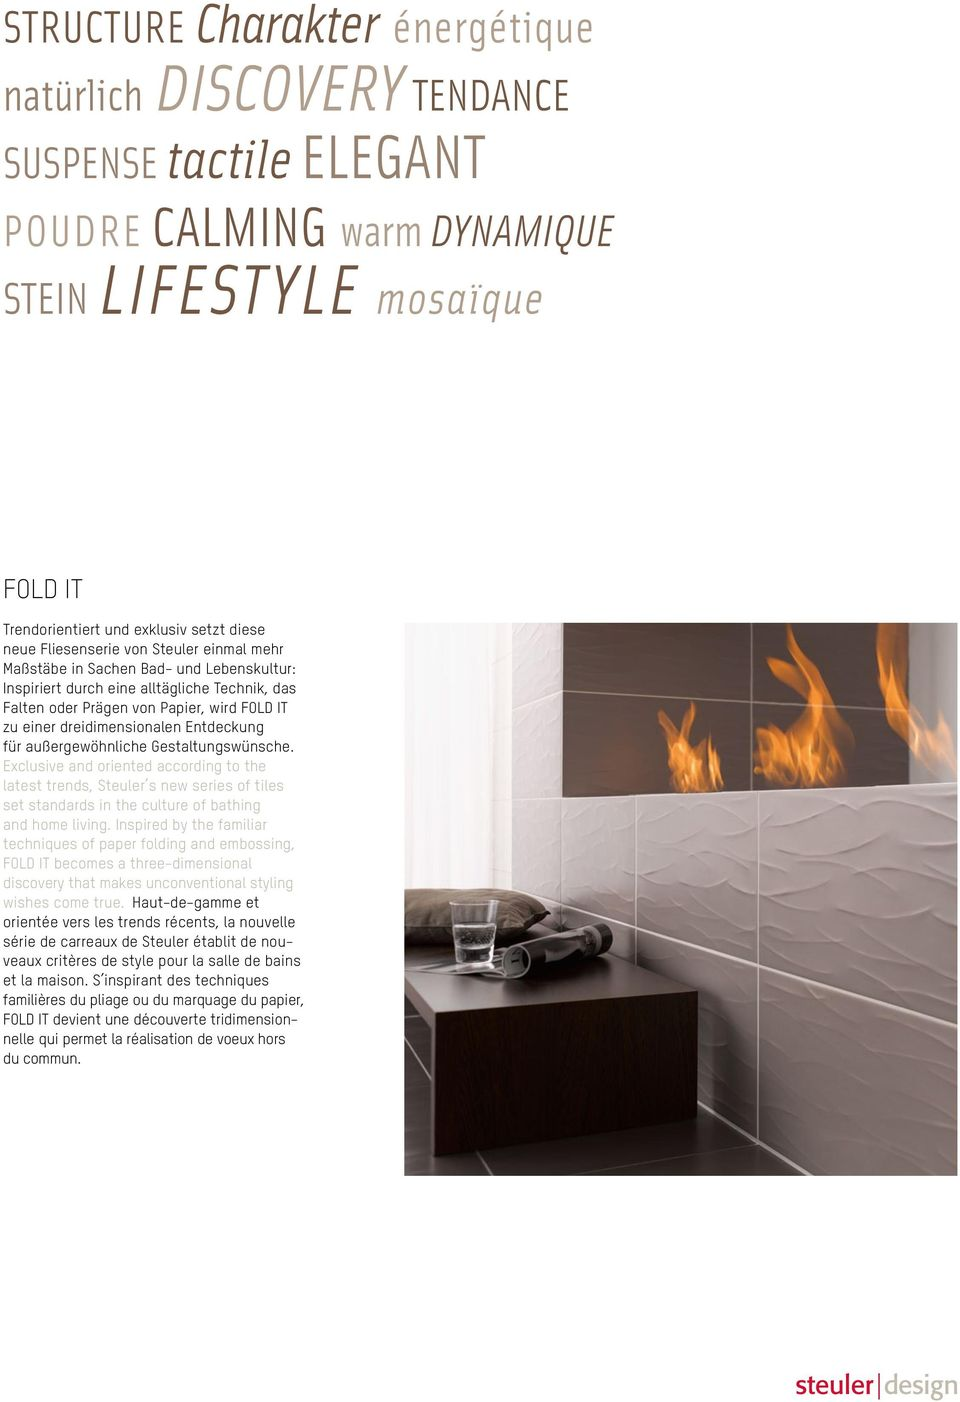 Entdeckung für außergewöhnliche Gestaltungswünsche. Exclusive and oriented according to the latest trends, Steuler s new series of tiles set standards in the culture of bathing and home living.